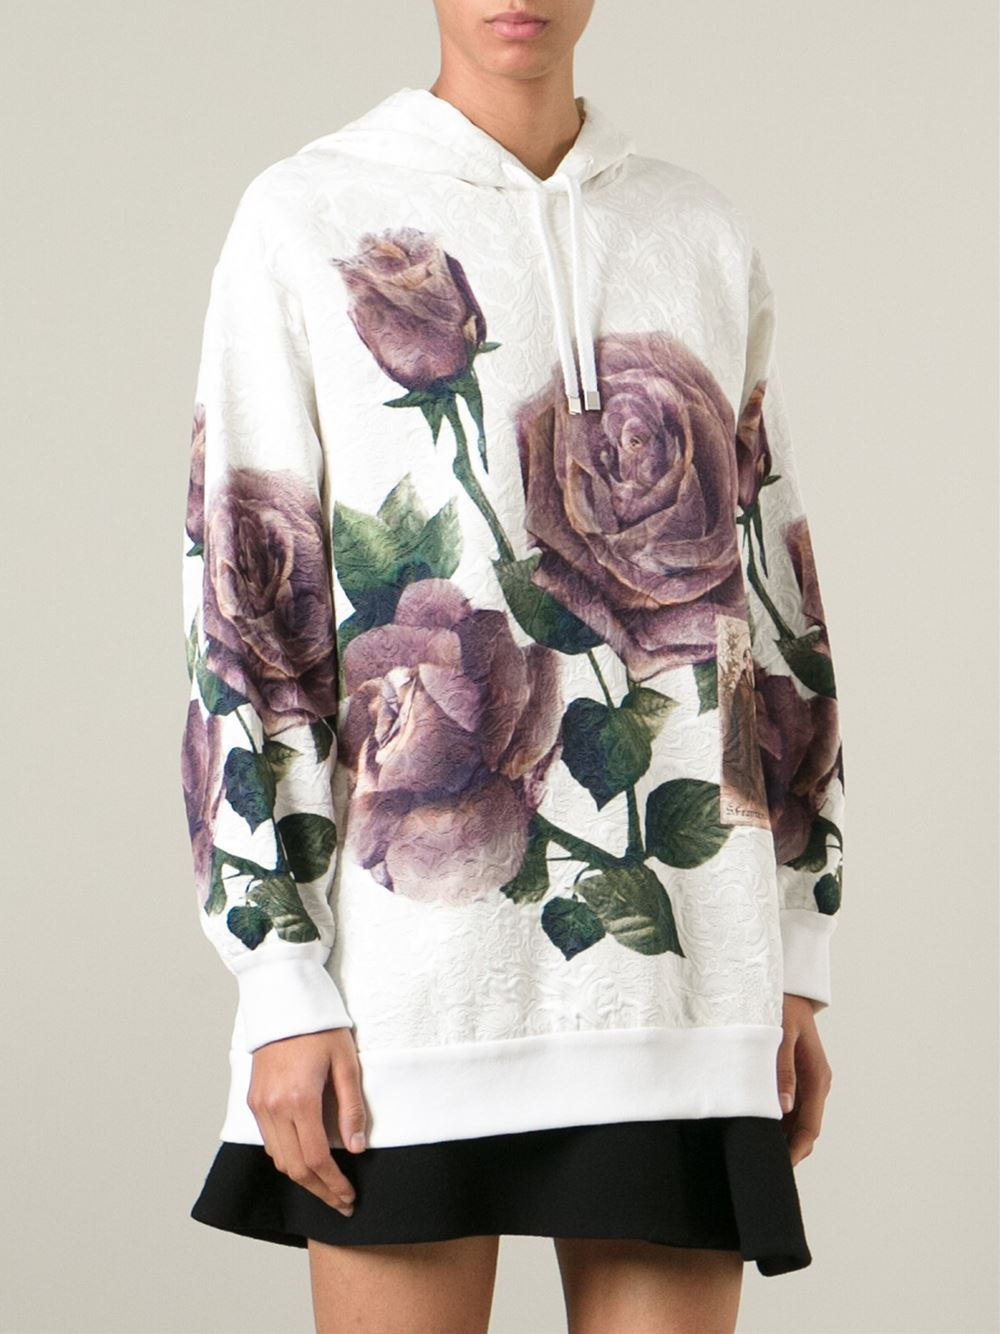 Discount Codes Clearance Store Limited Edition Dolce & Gabbana rose printed hoodie Outlet Pre Order H5AlH